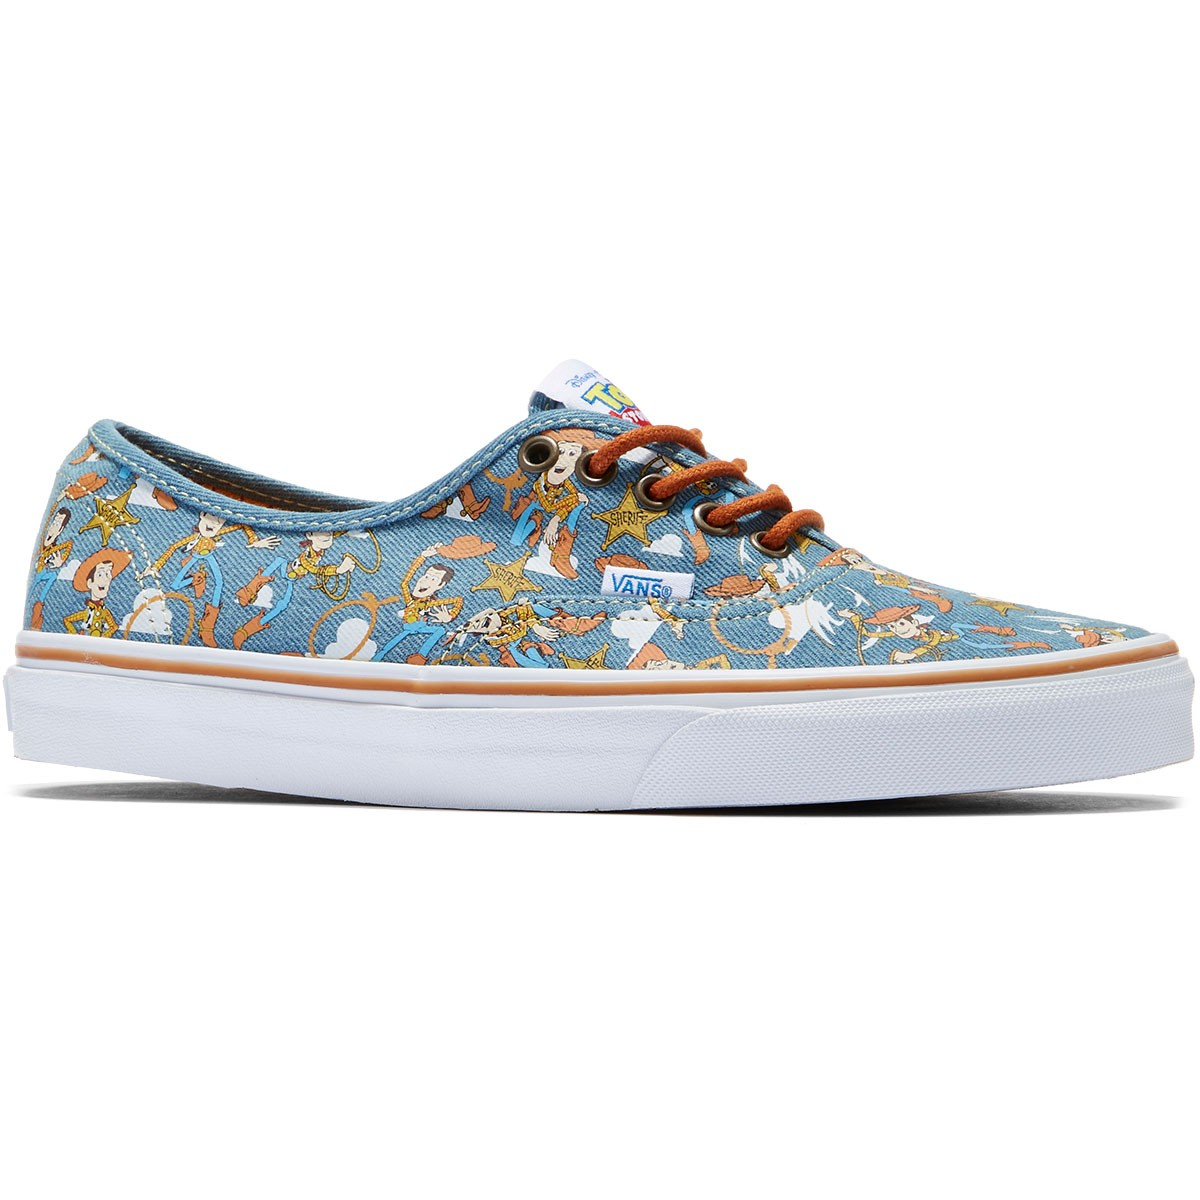 Vans X Disney Toy Story Authentic Shoes